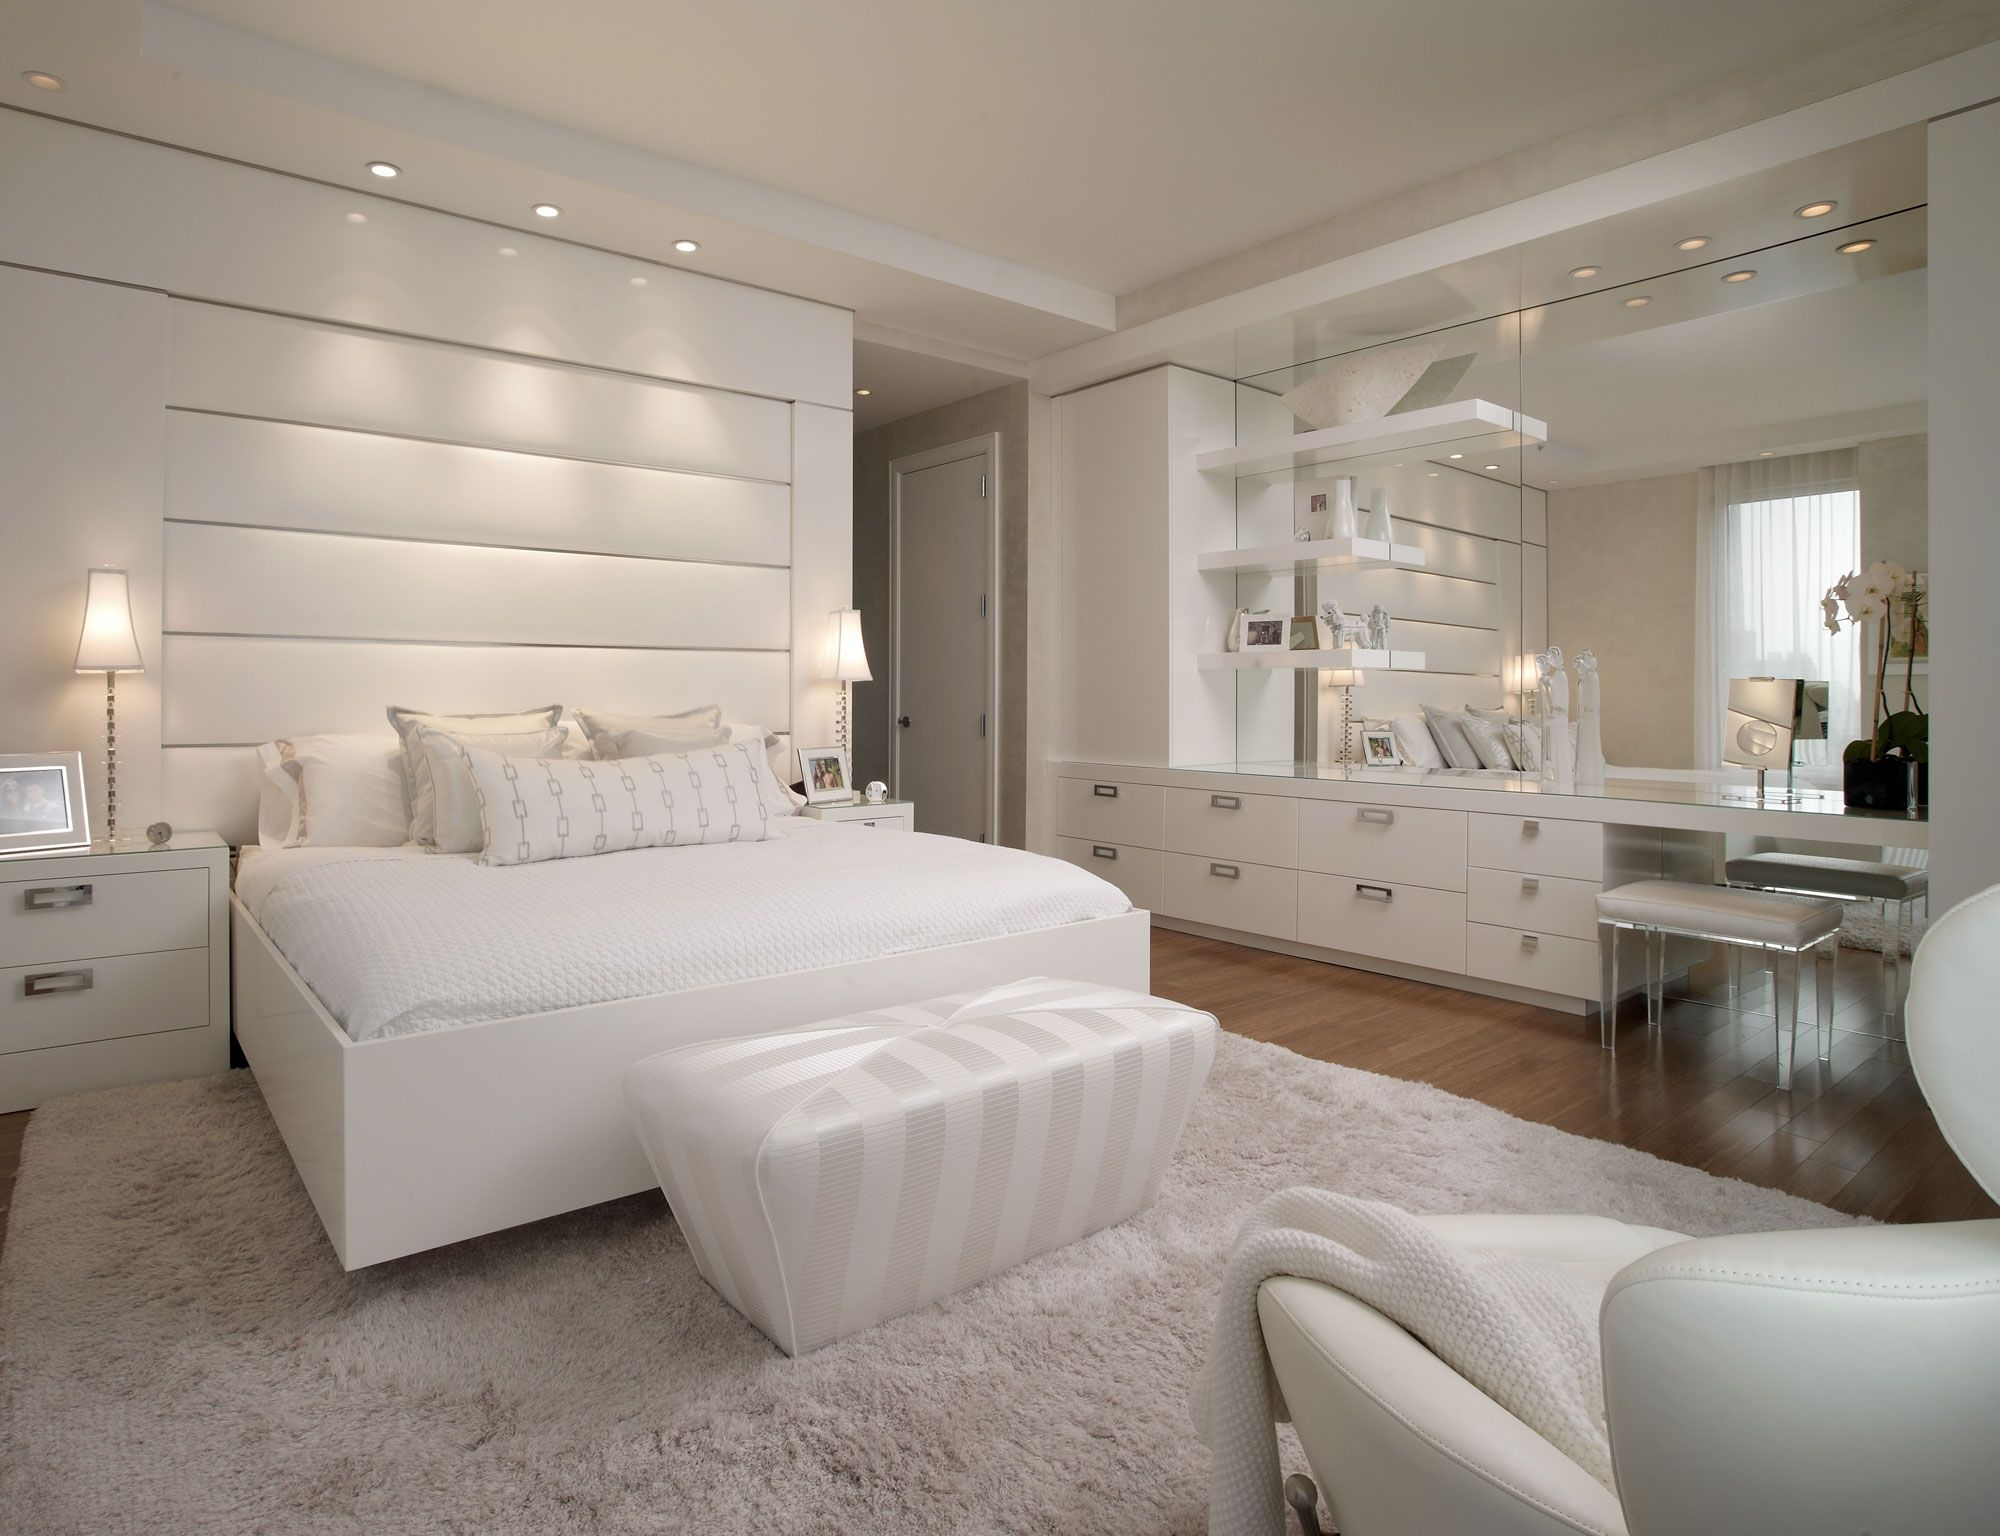 Luxury all white bedroom decorating ideas amazing for Pics of luxury bedrooms